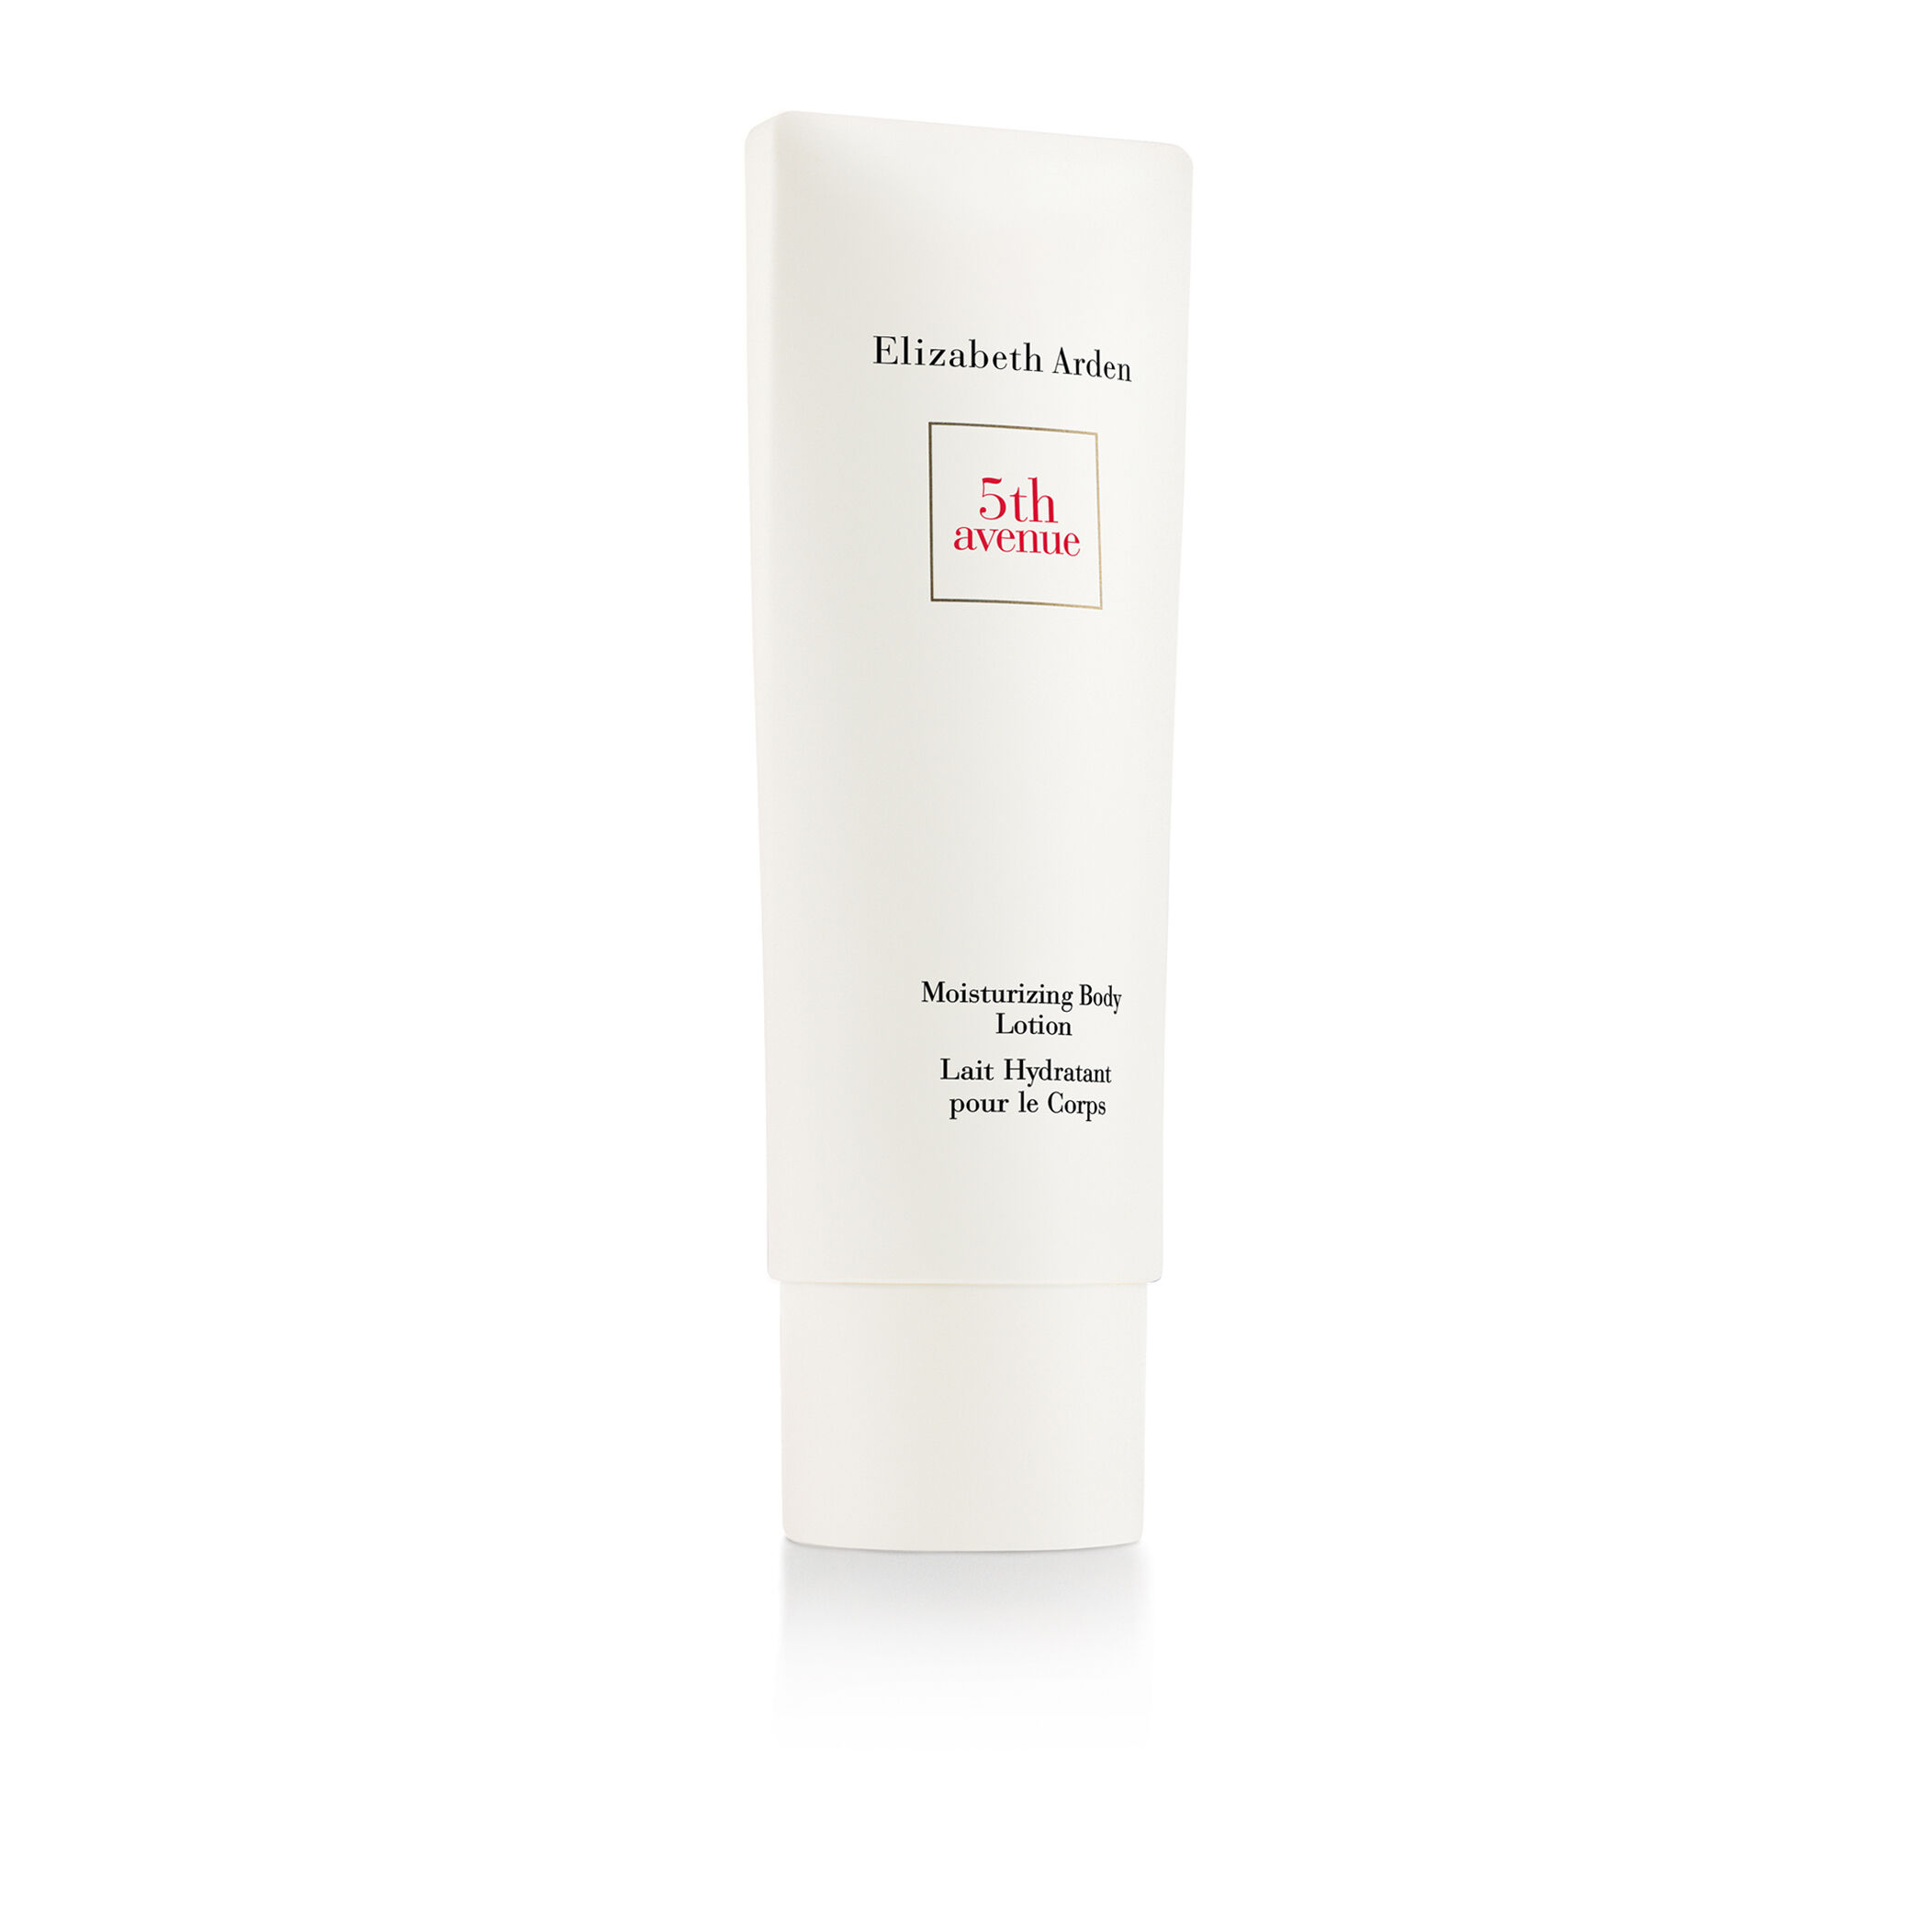 This luxuriously scented hydrating lotion leaves skin feeling velvety soft all -day.